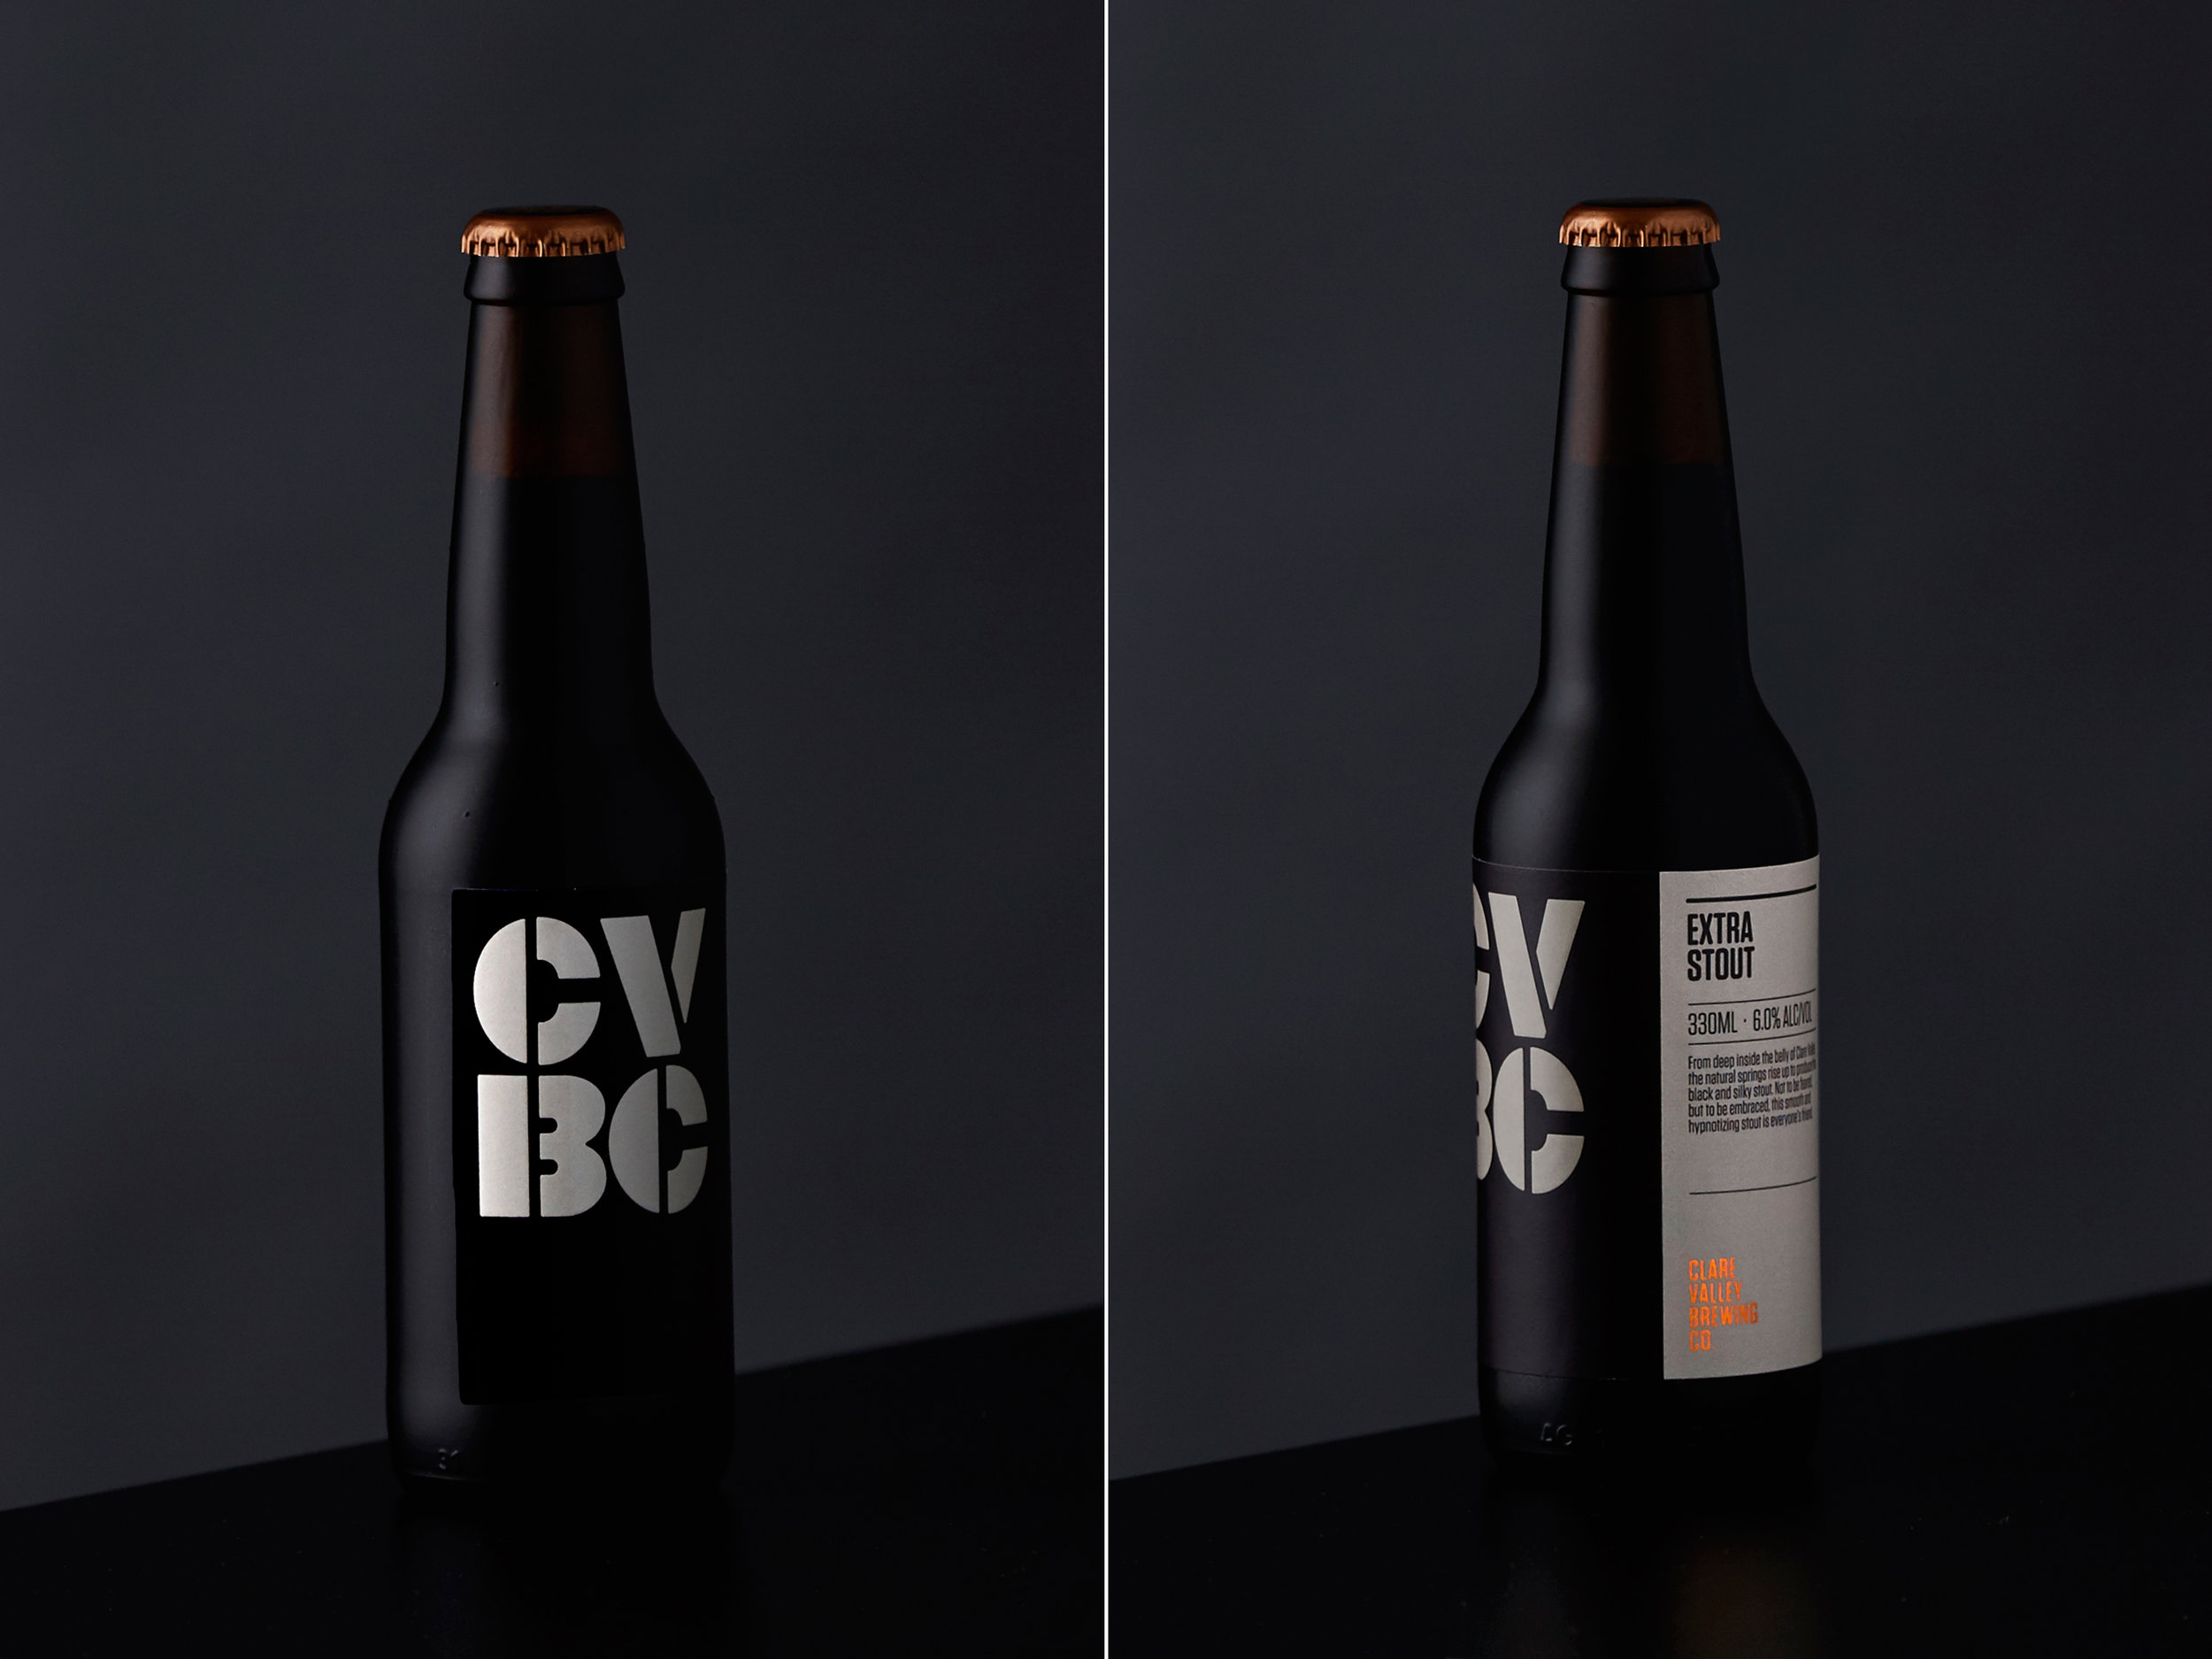 Brewing Company from Australia gets Simple and Memorable